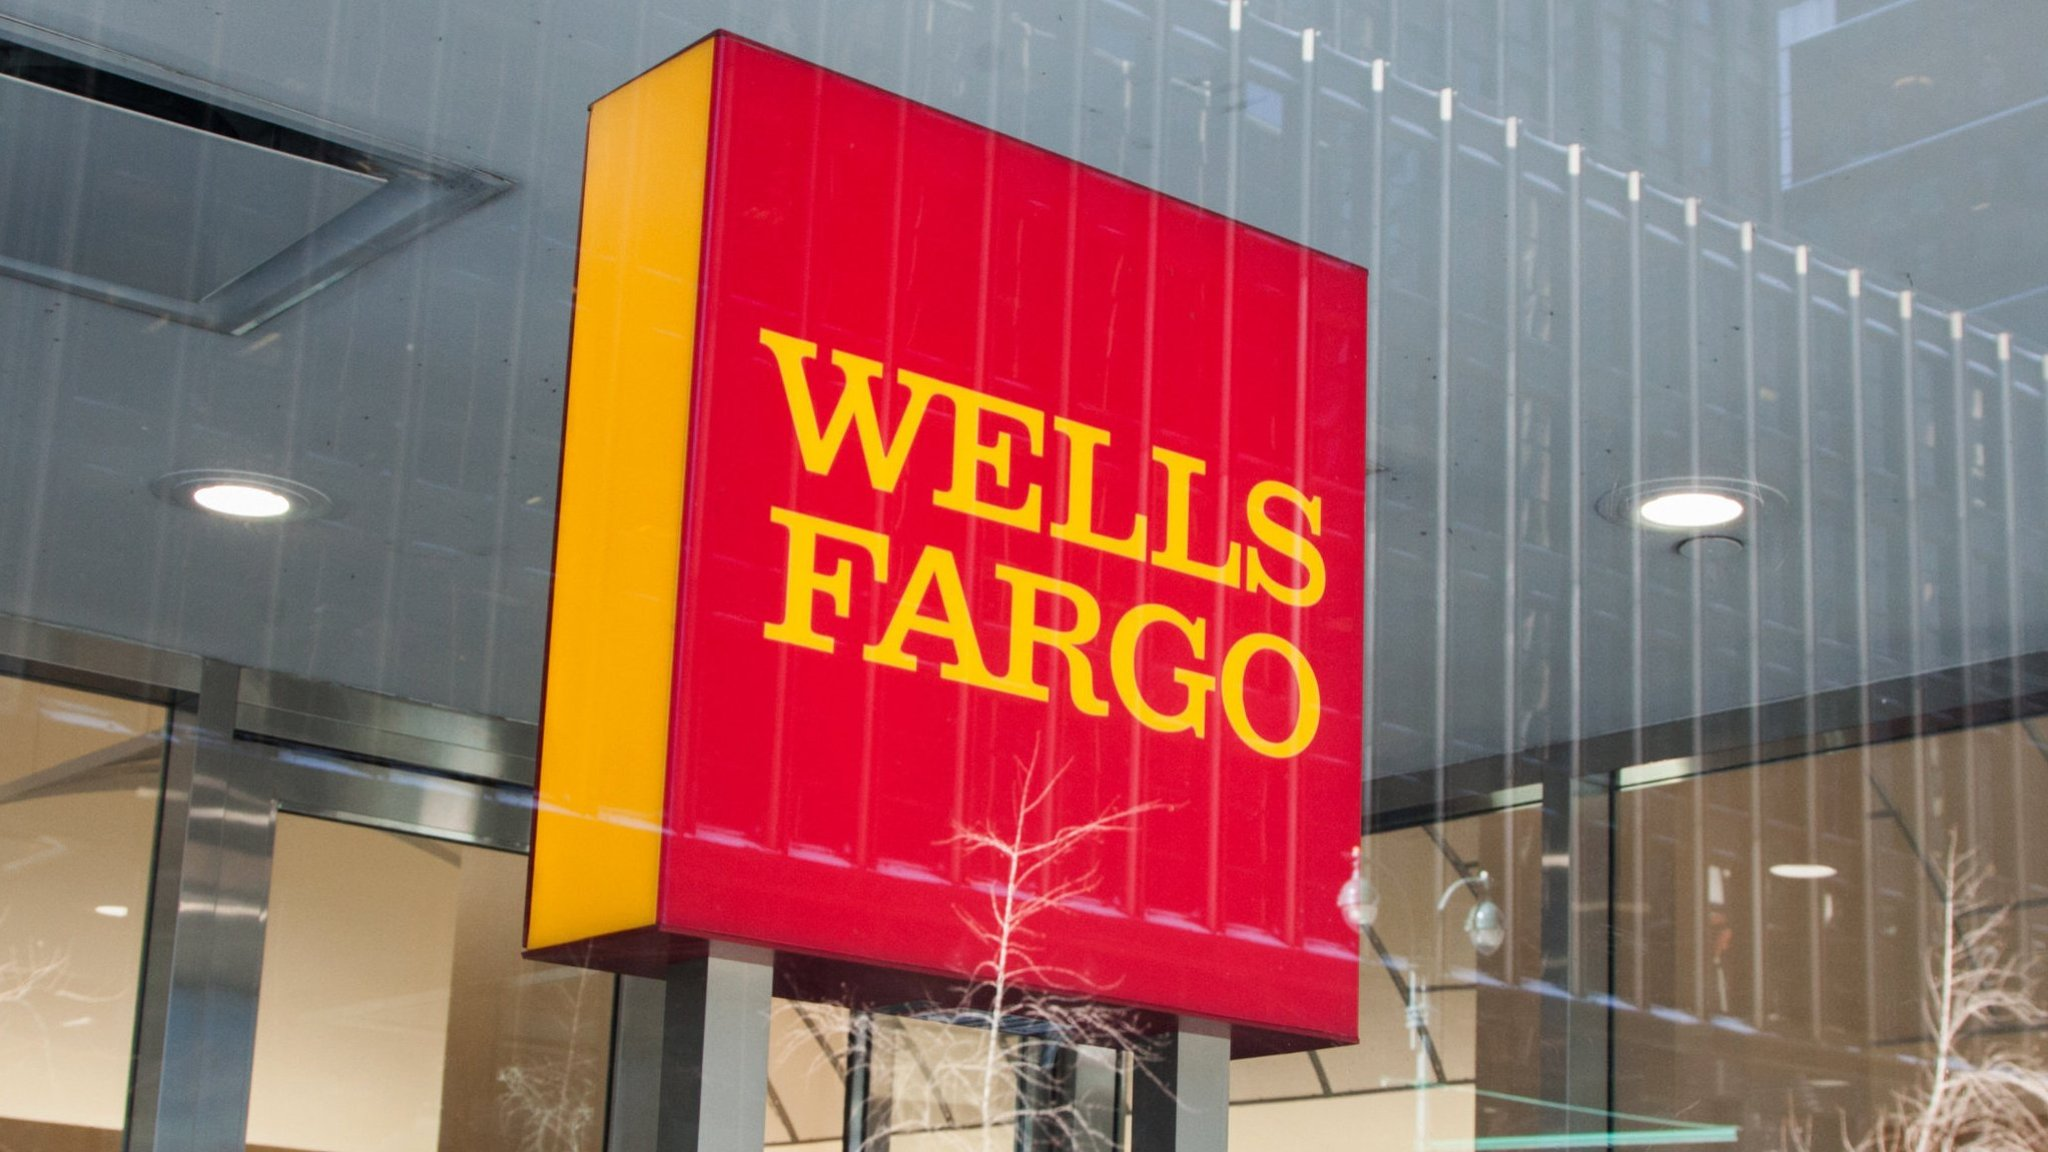 Wells Fargo to close 900 branches despite $3.4bn tax boost